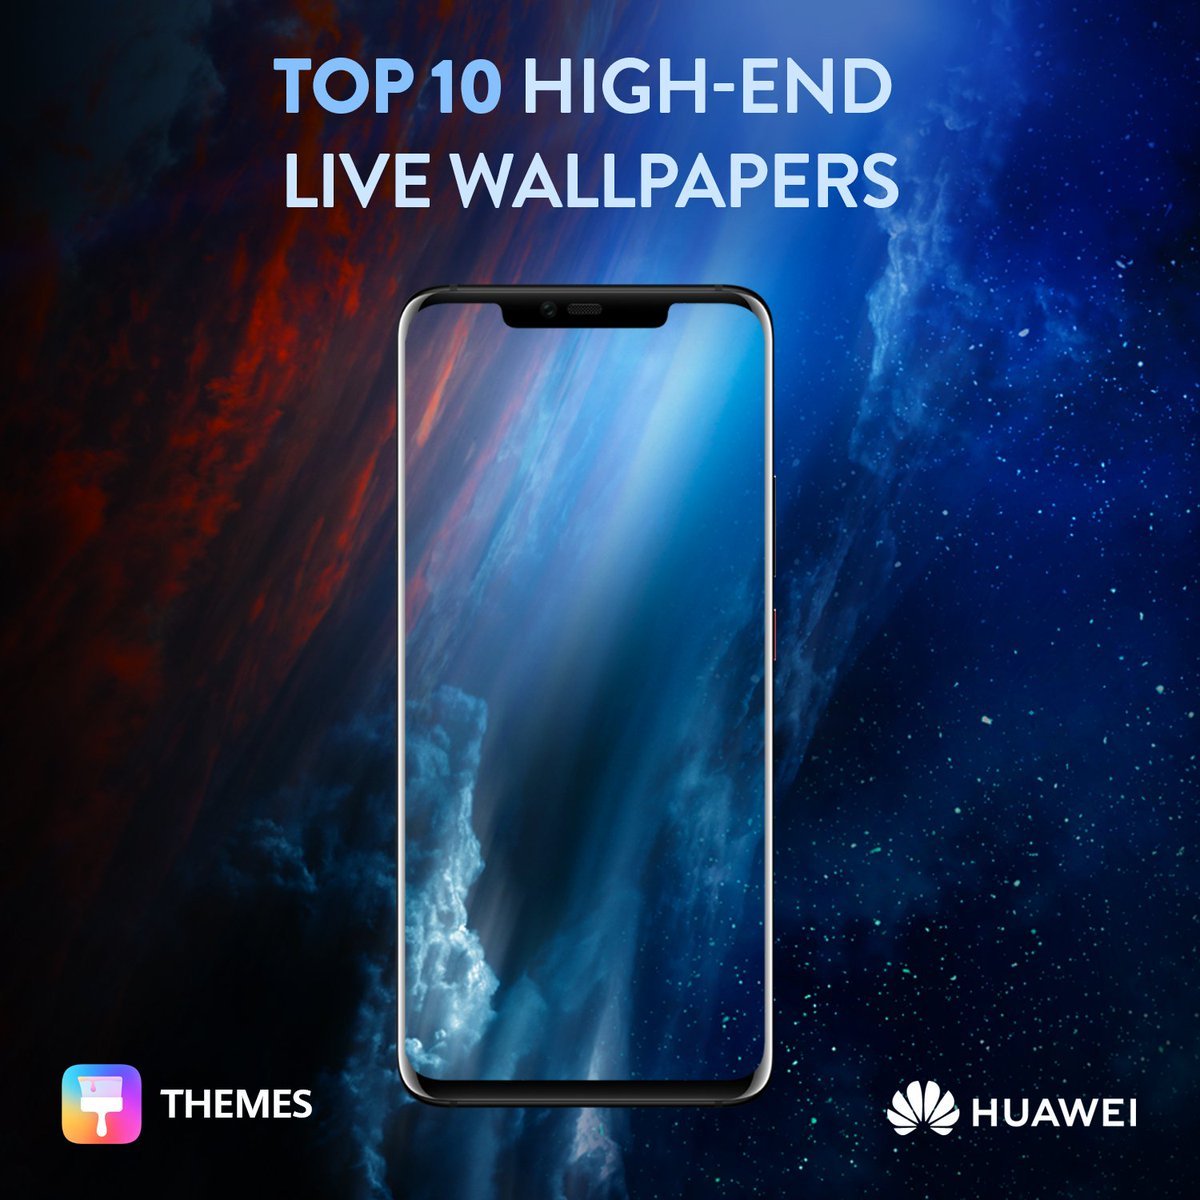 Huaweimobileservices On Twitter Give Your Smartphone An